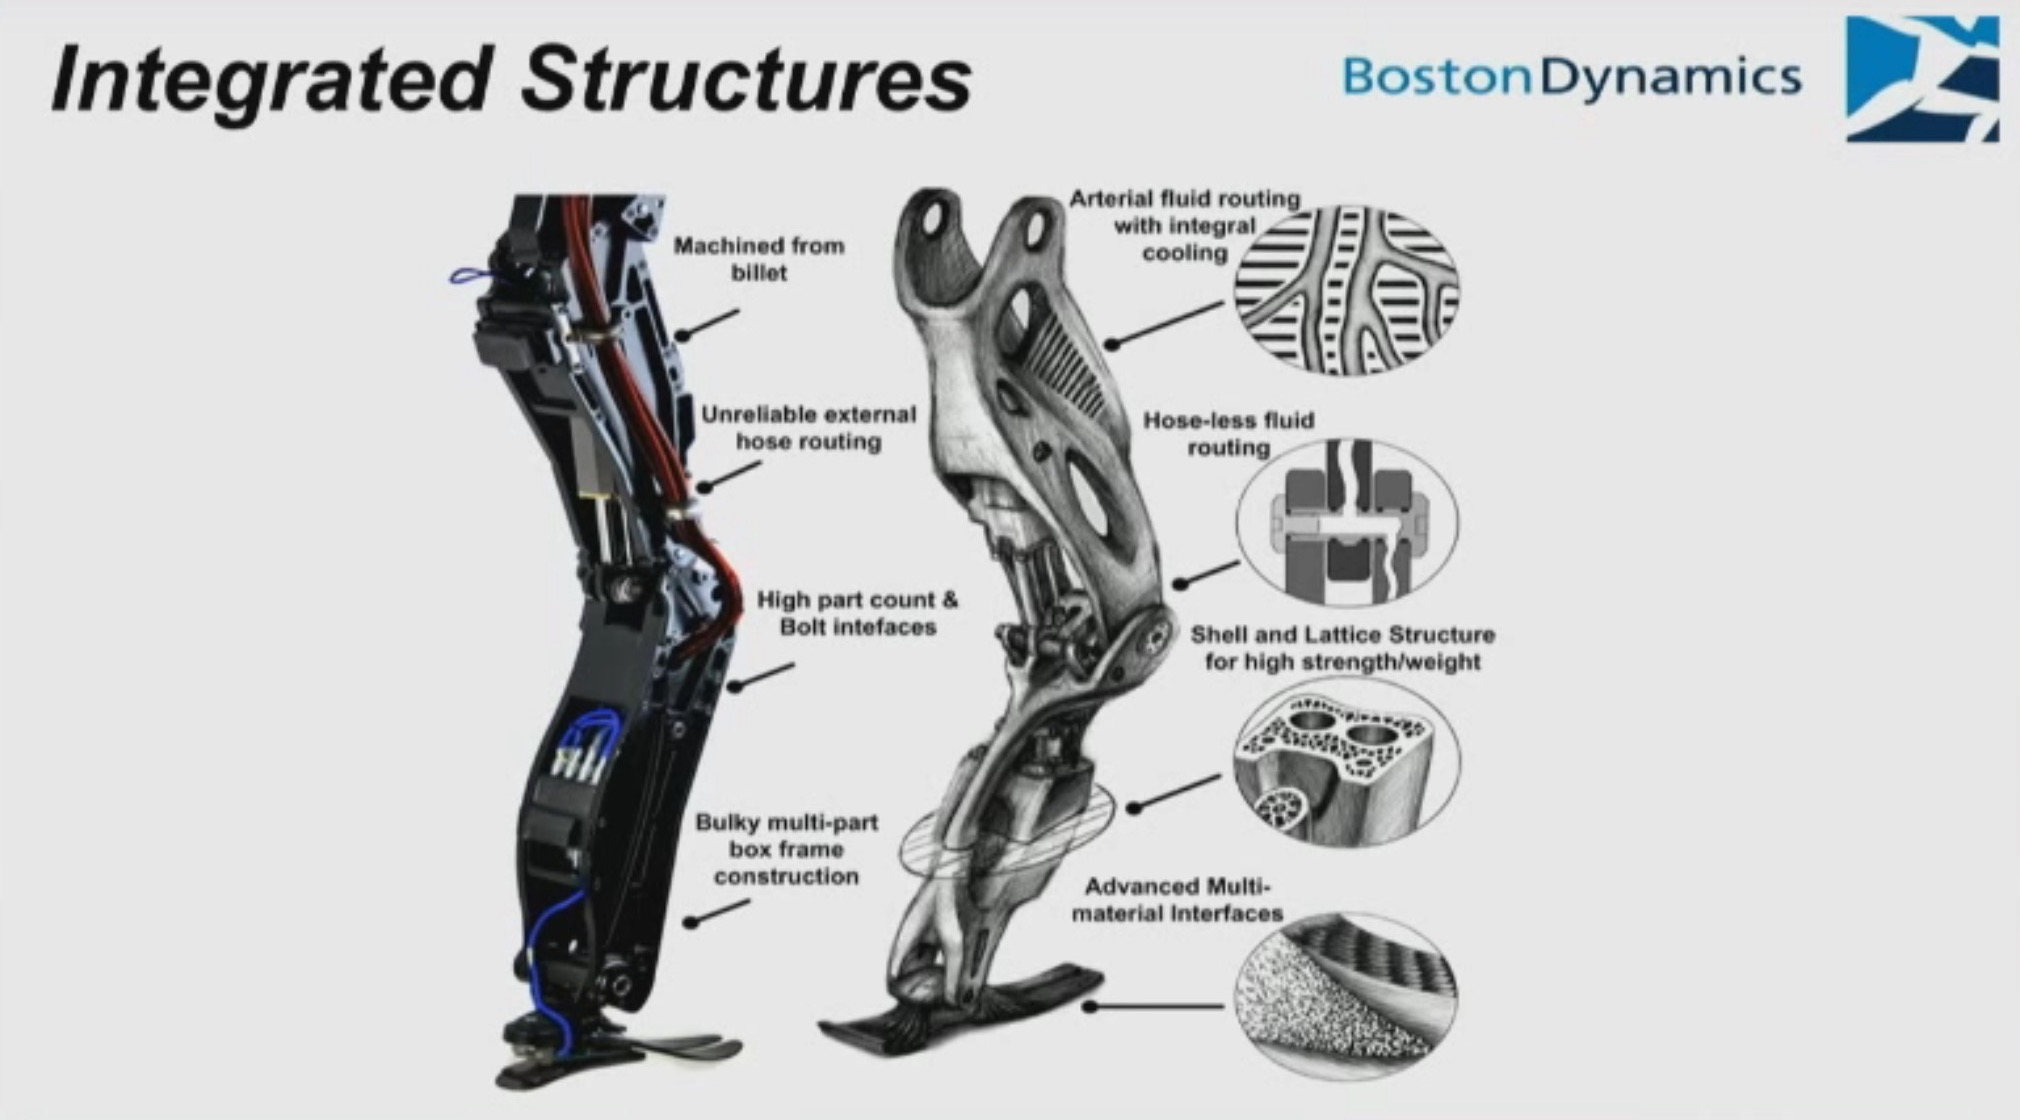 Boston Dynamics Robots Get More Additive Manufactured